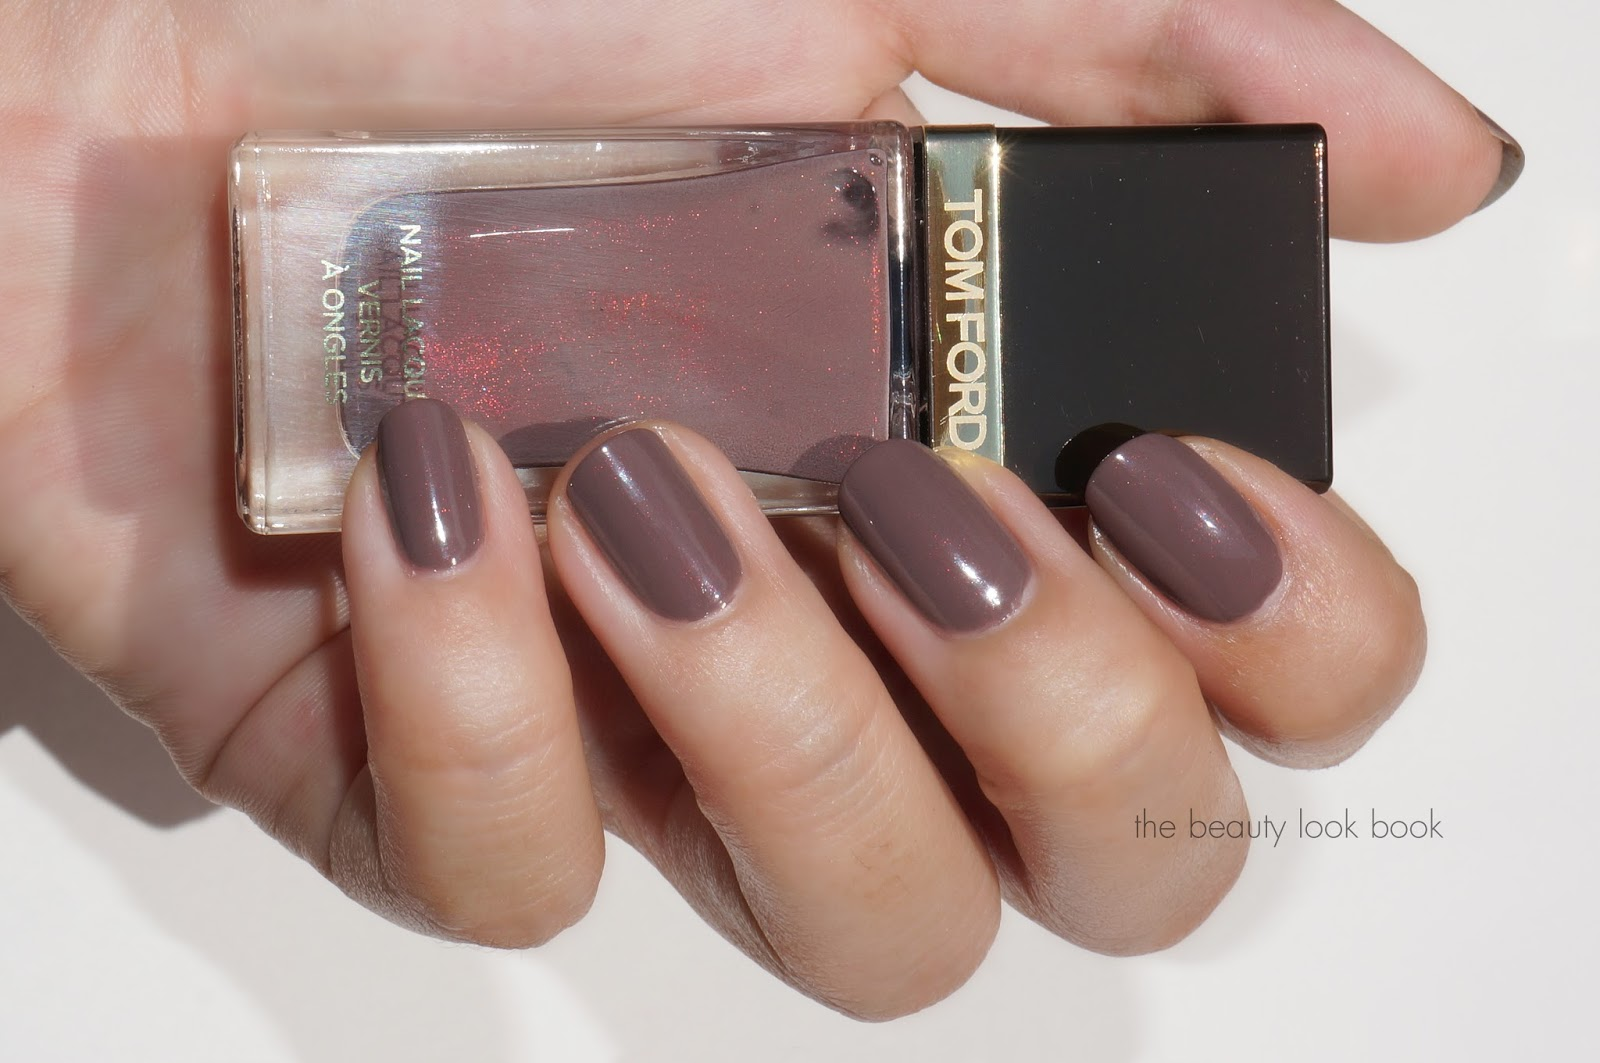 Tom Ford Black Sugar Nail Lacquer - Fall 2013 | The Beauty Look Book